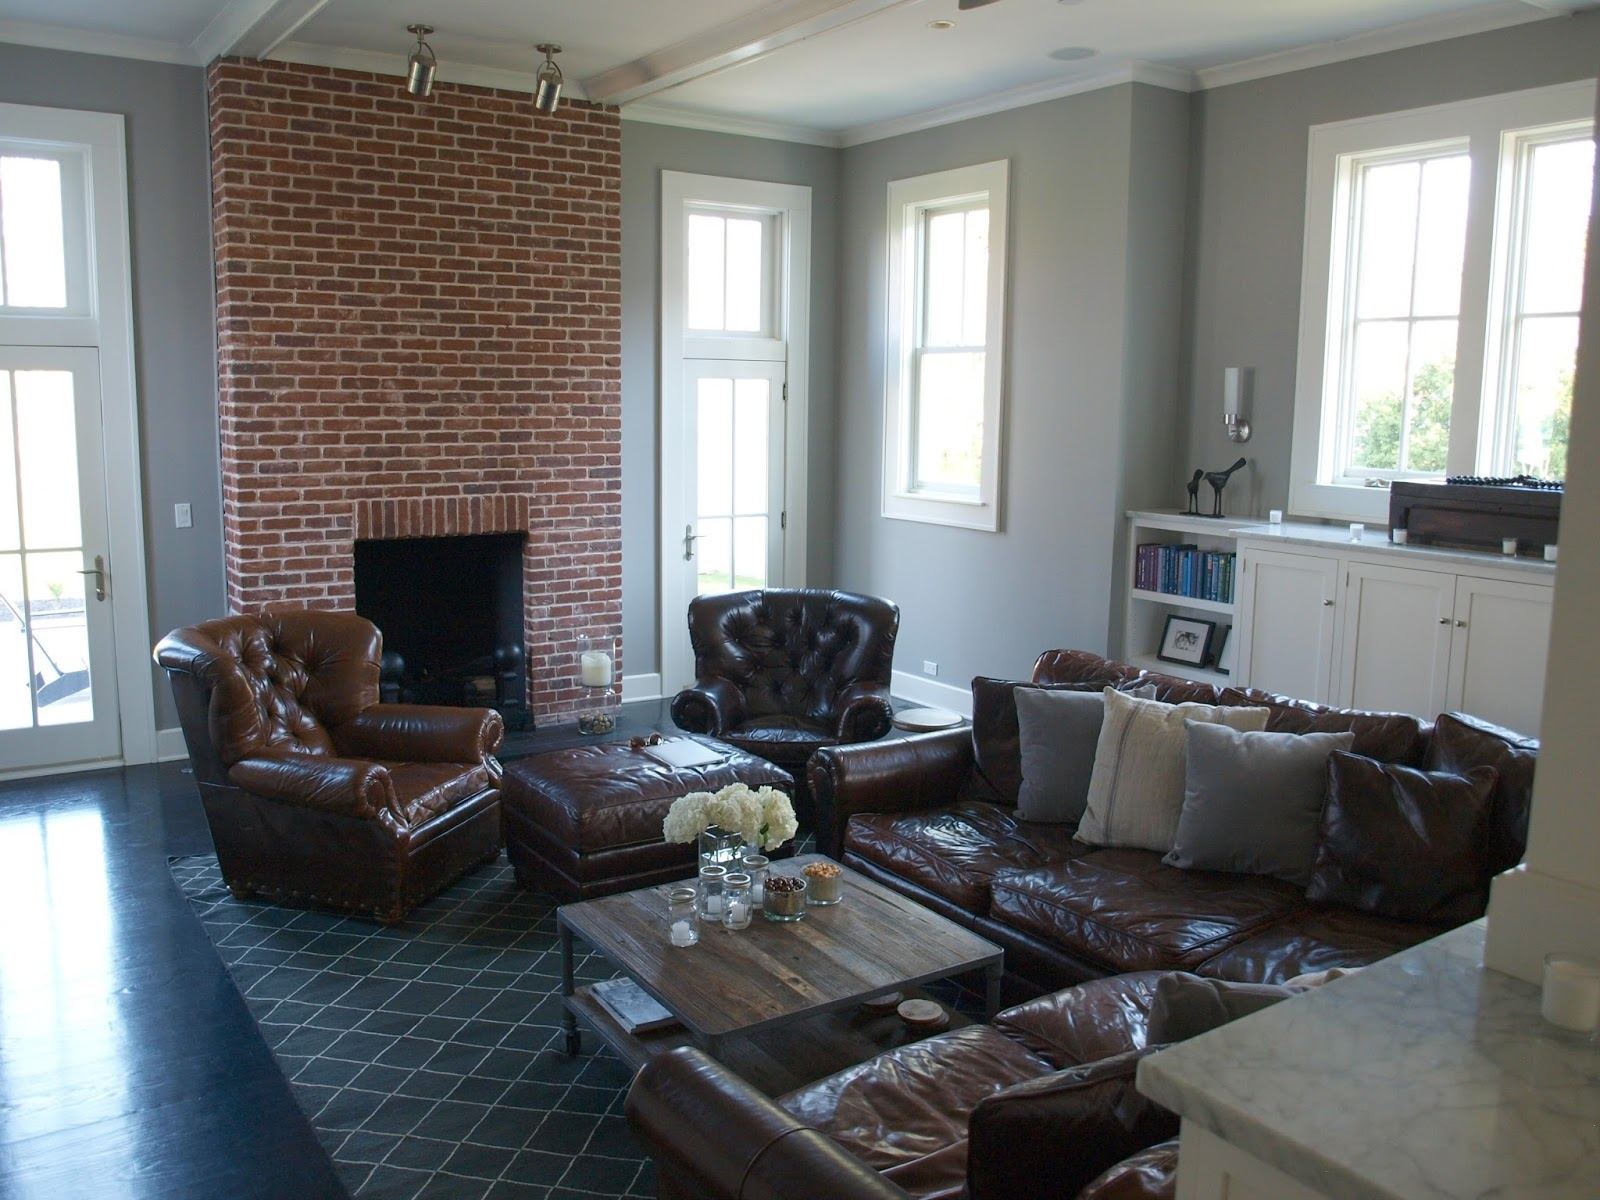 Industrial farmhouse family room with red brick fireplace and leather furniture - Hello Lovely Studio